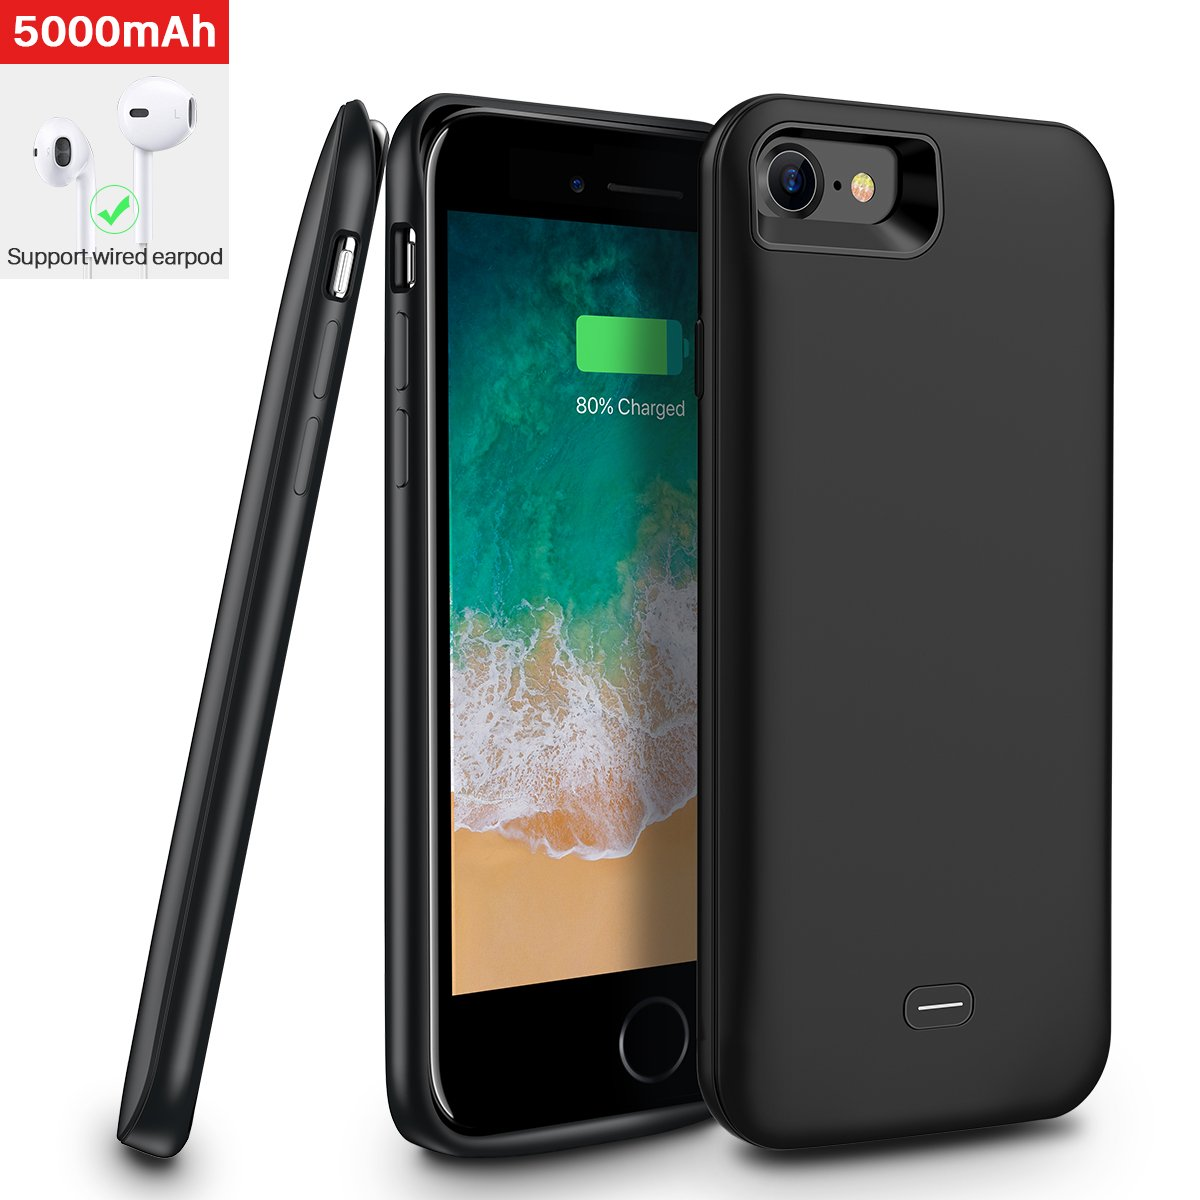 iphone 7/iphone 8 Battery Case,[5000mAh] iphone7/iphone8 protective battery case,Portable Rechargeable Protective Charging Case Slim for Apple iphone 7/8,Support Lightning Earphone(Black)